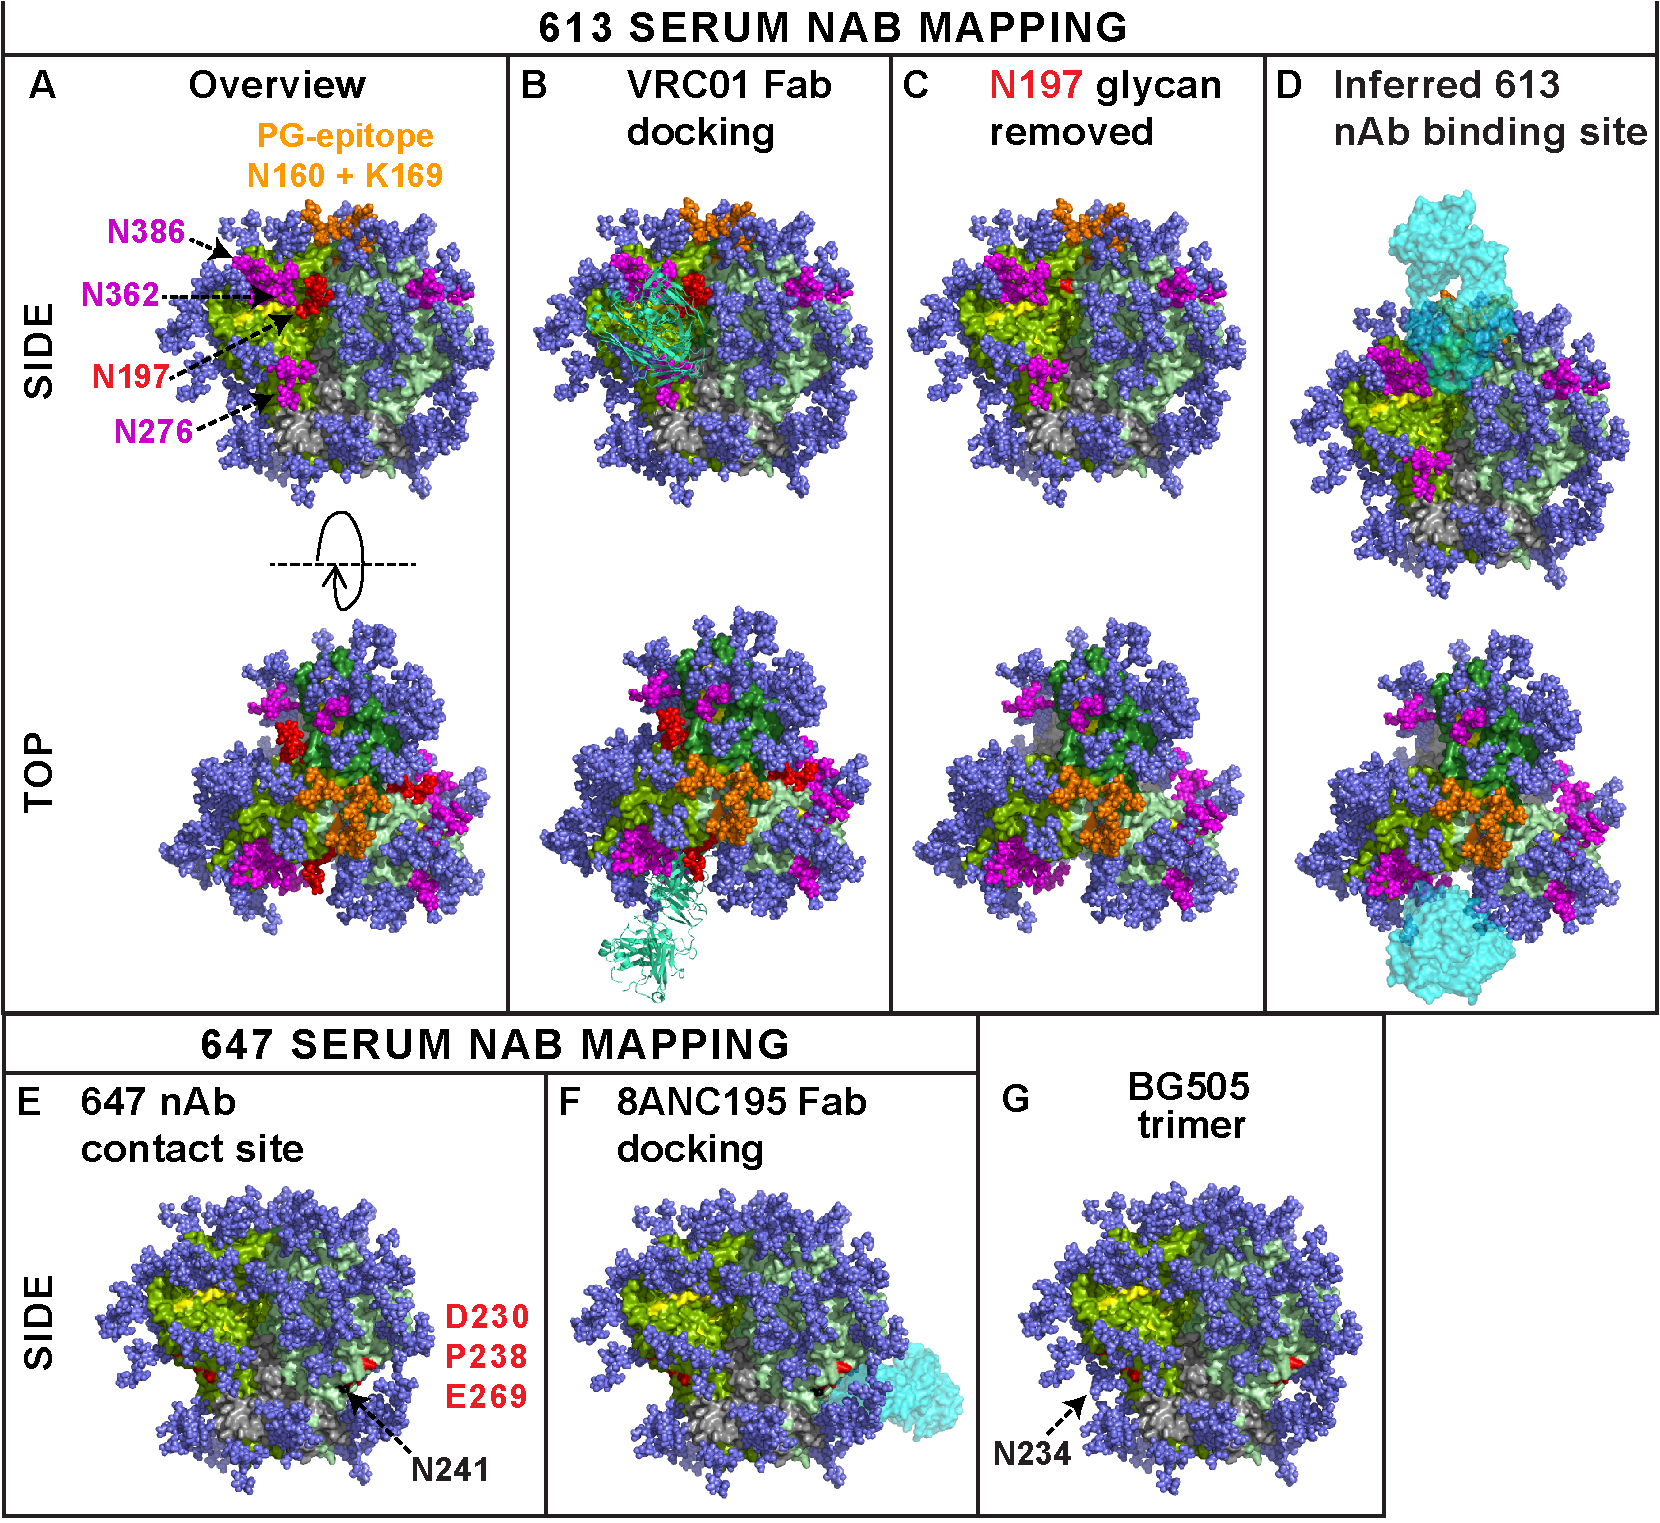 Modeling the epitope footprints of neutralizing sera 613 and 647.